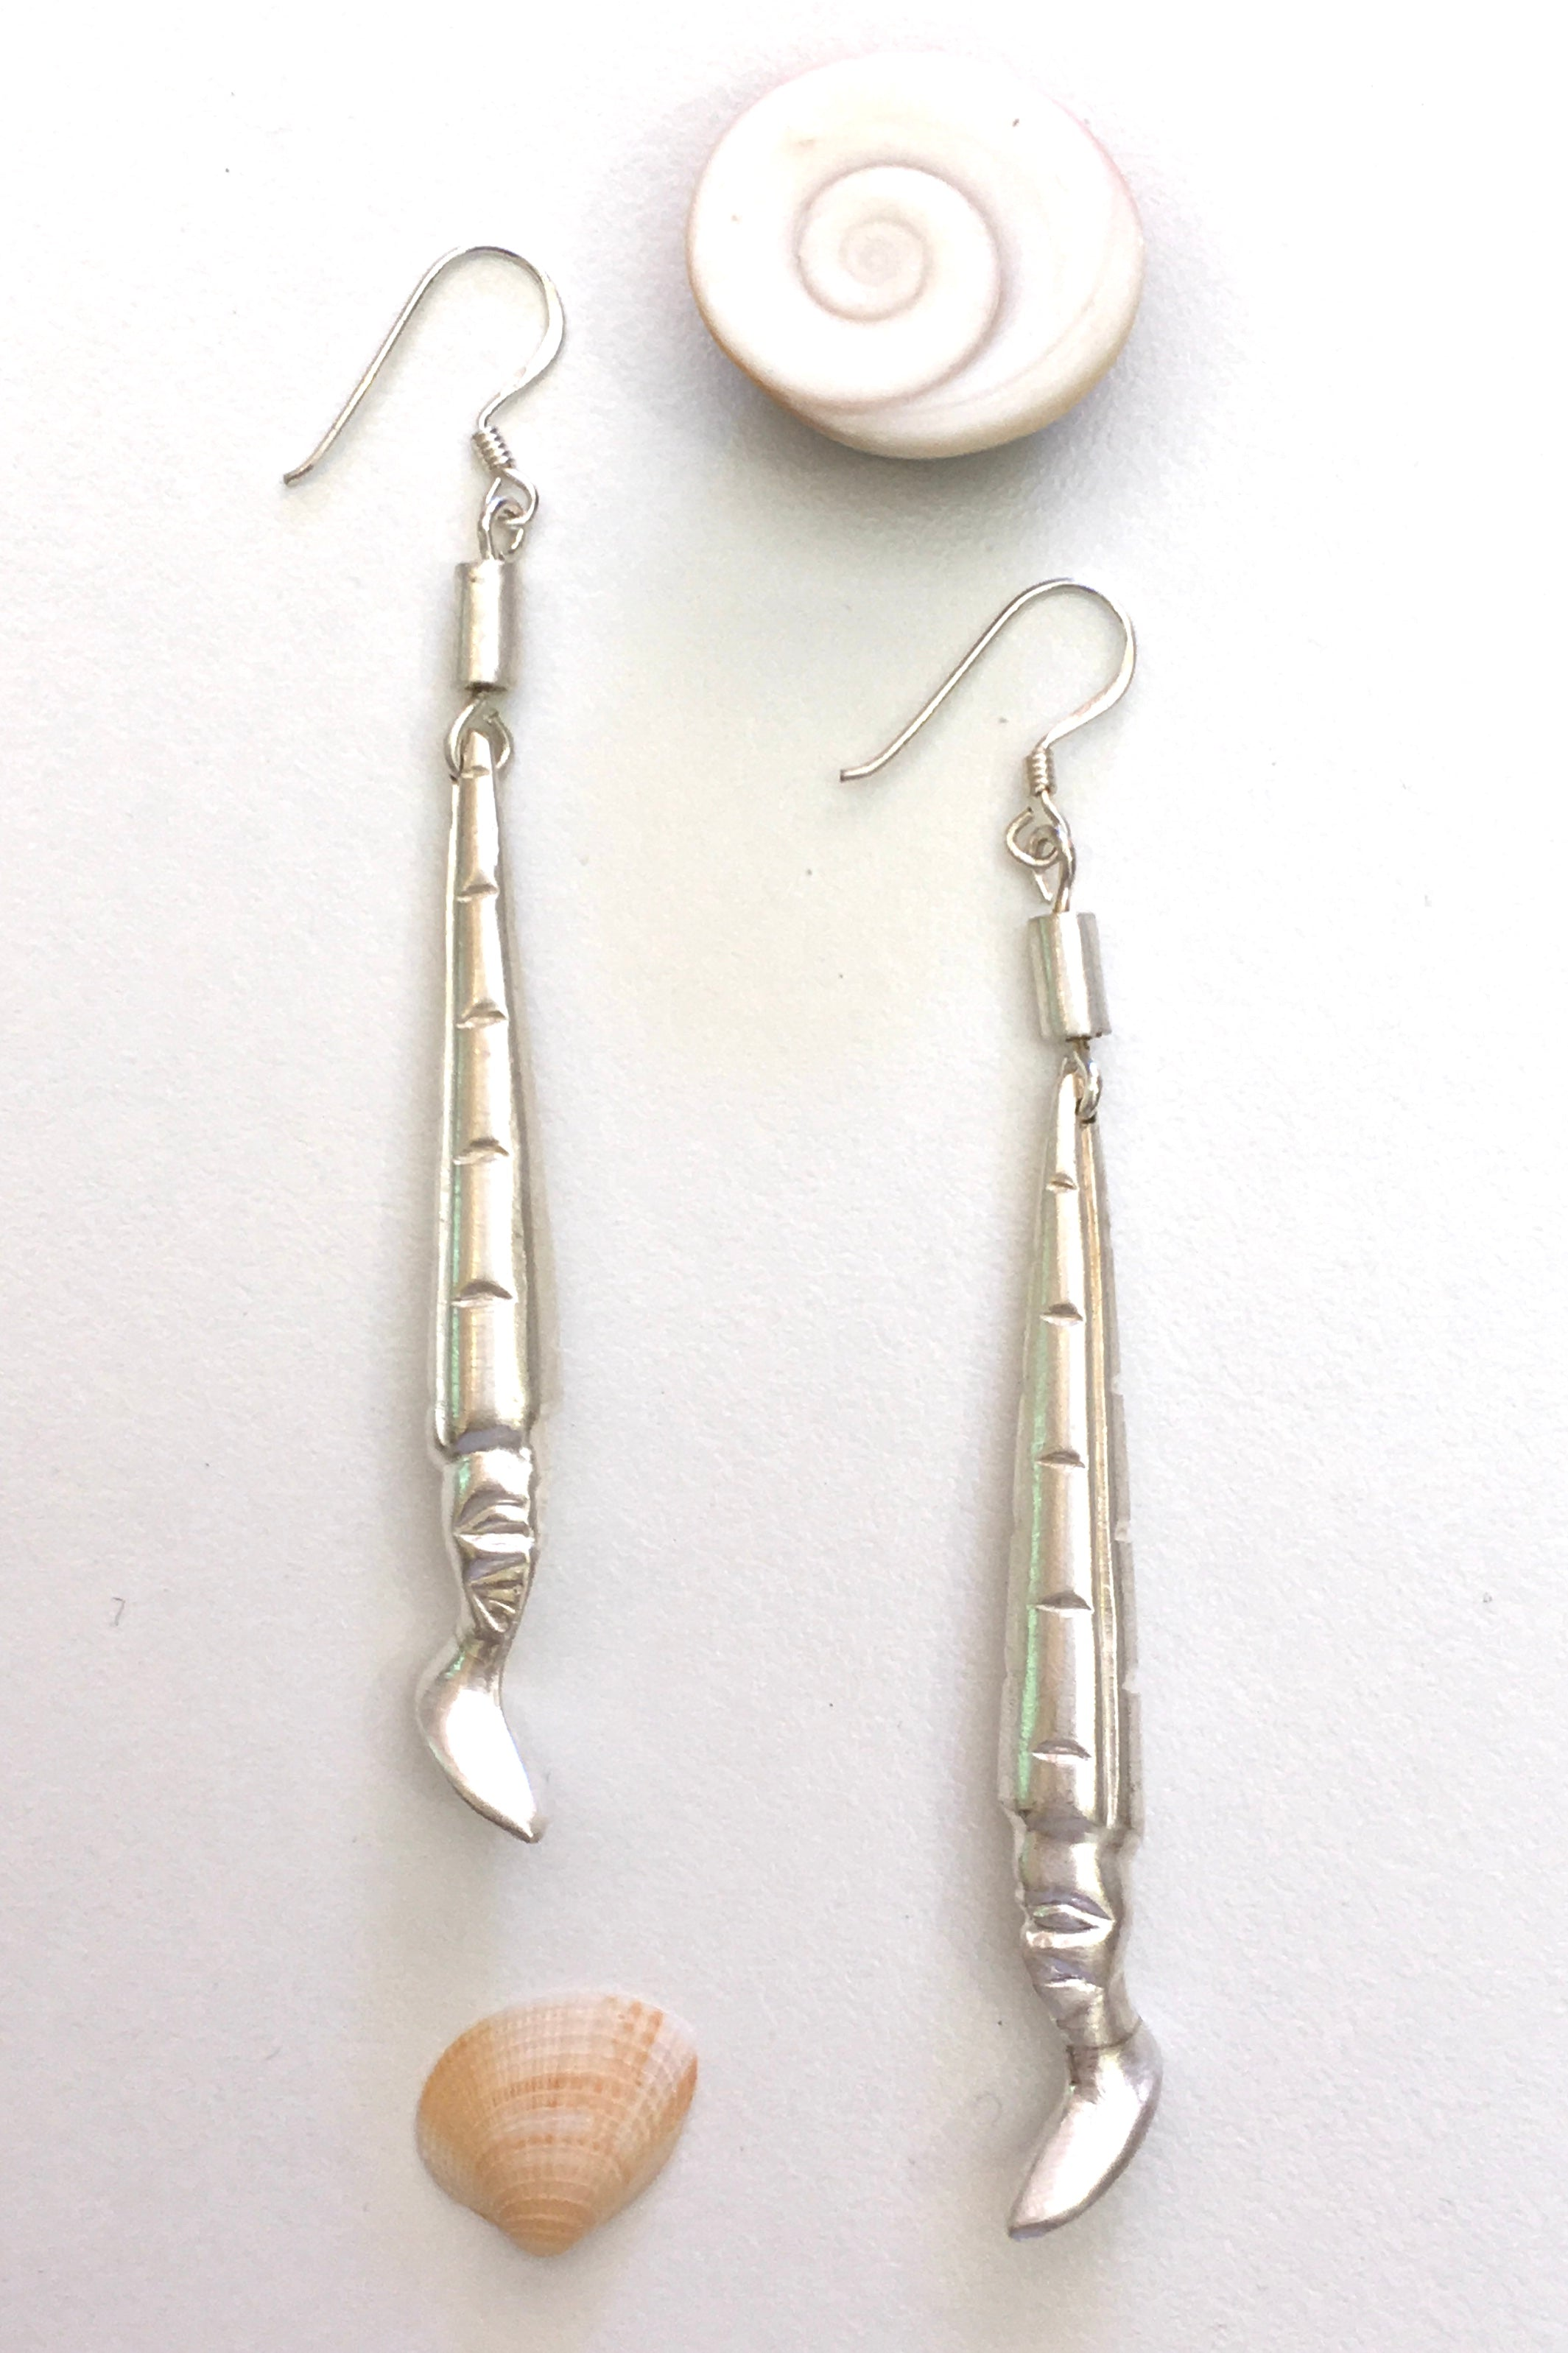 Silver African Face Earrings, 925 Silver Brushed Satin Finish Earrings